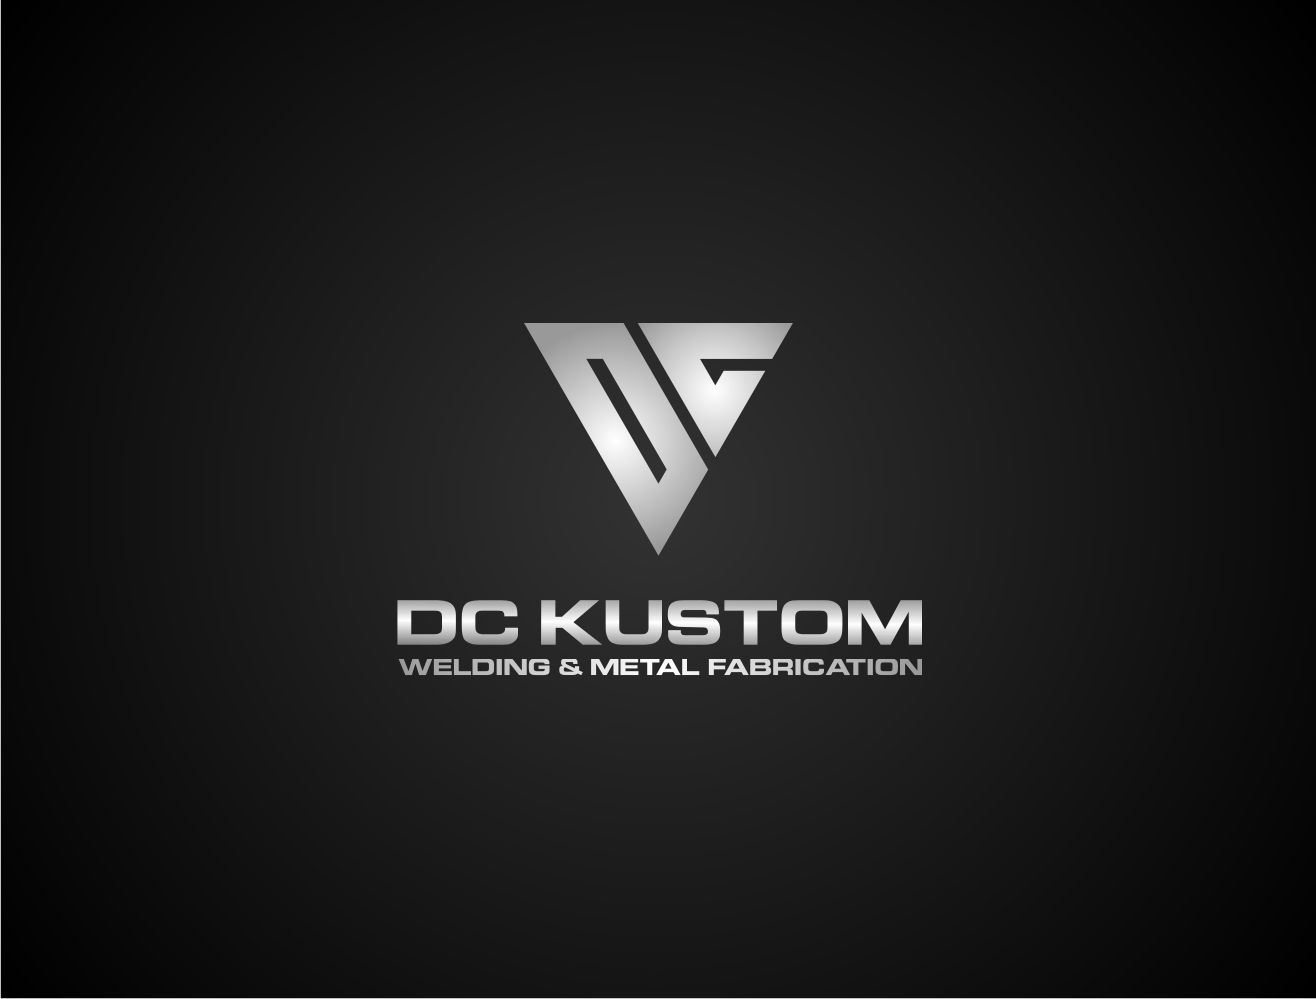 Logo Design by Khoirul Khoirul bejo - Entry No. 92 in the Logo Design Contest Imaginative Logo Design for DC KUSTOM WELDING & METAL FABRICATION.